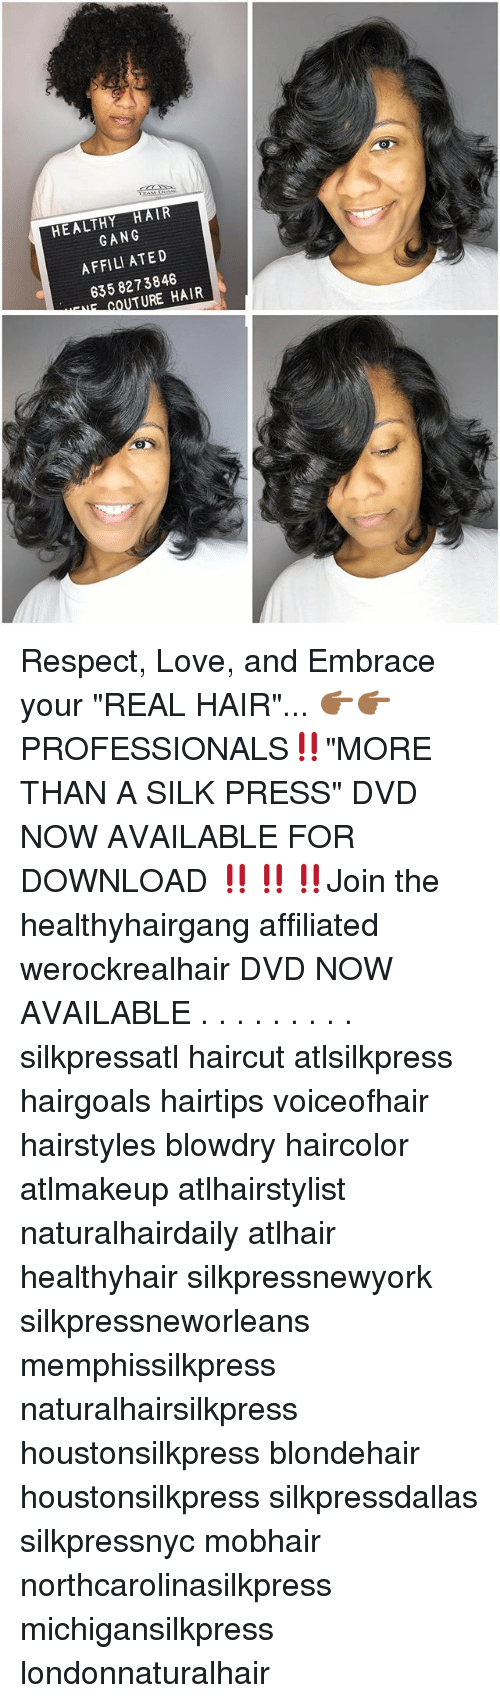 HEALTHY HAIR GANG AFFILI ATED 3 3 TURE HAIR Respect Love